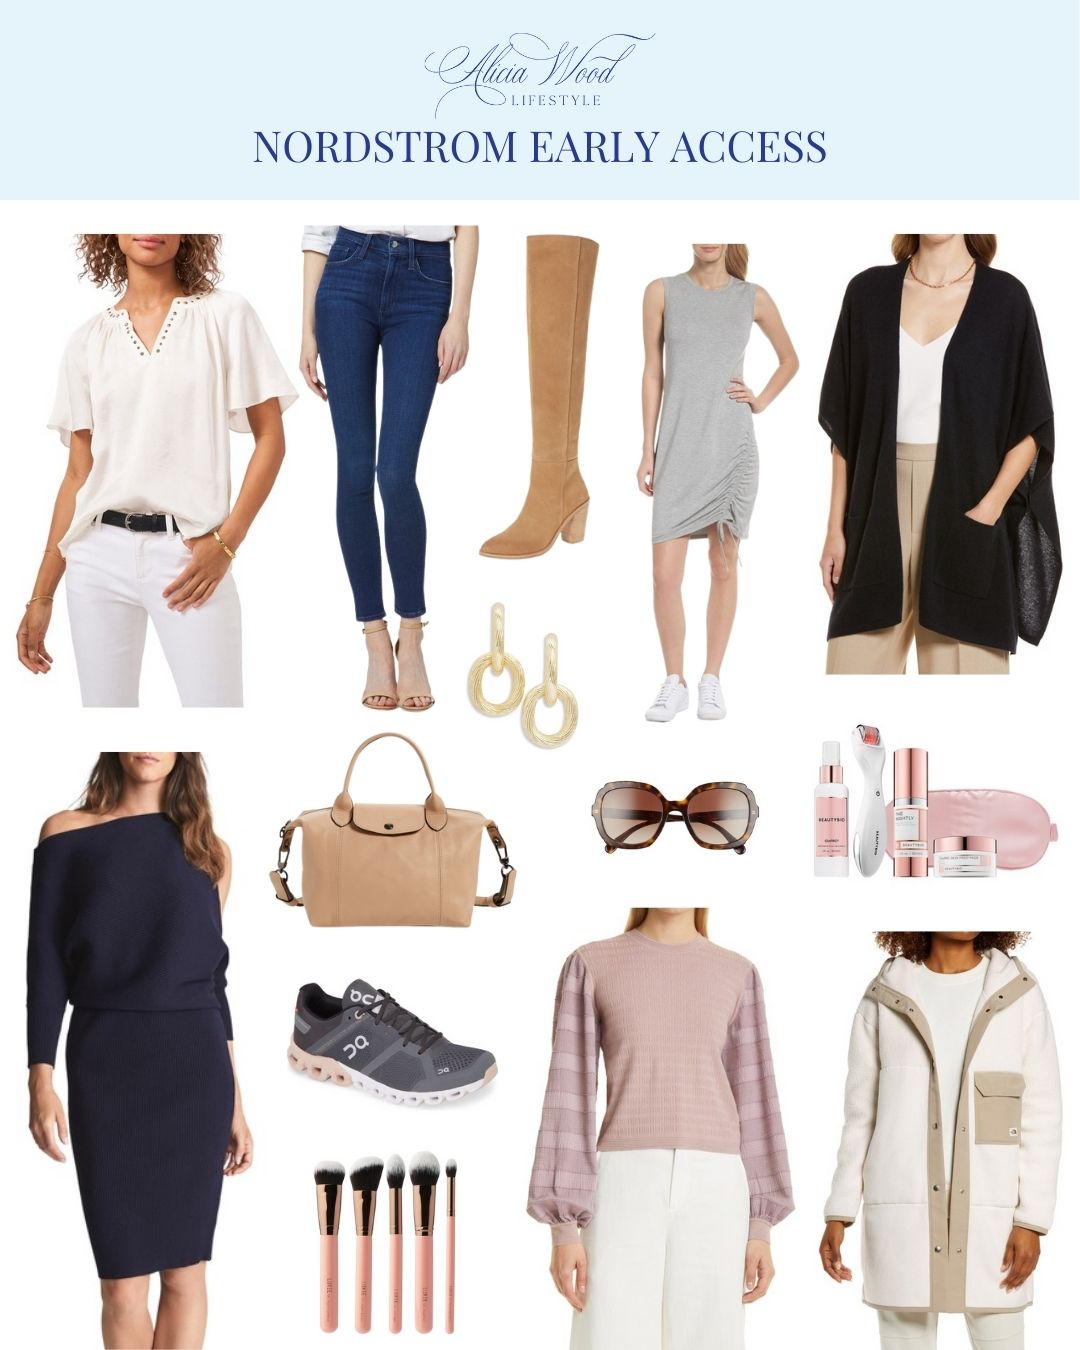 Best of the Nordstrom Anniversary Sale Early Access